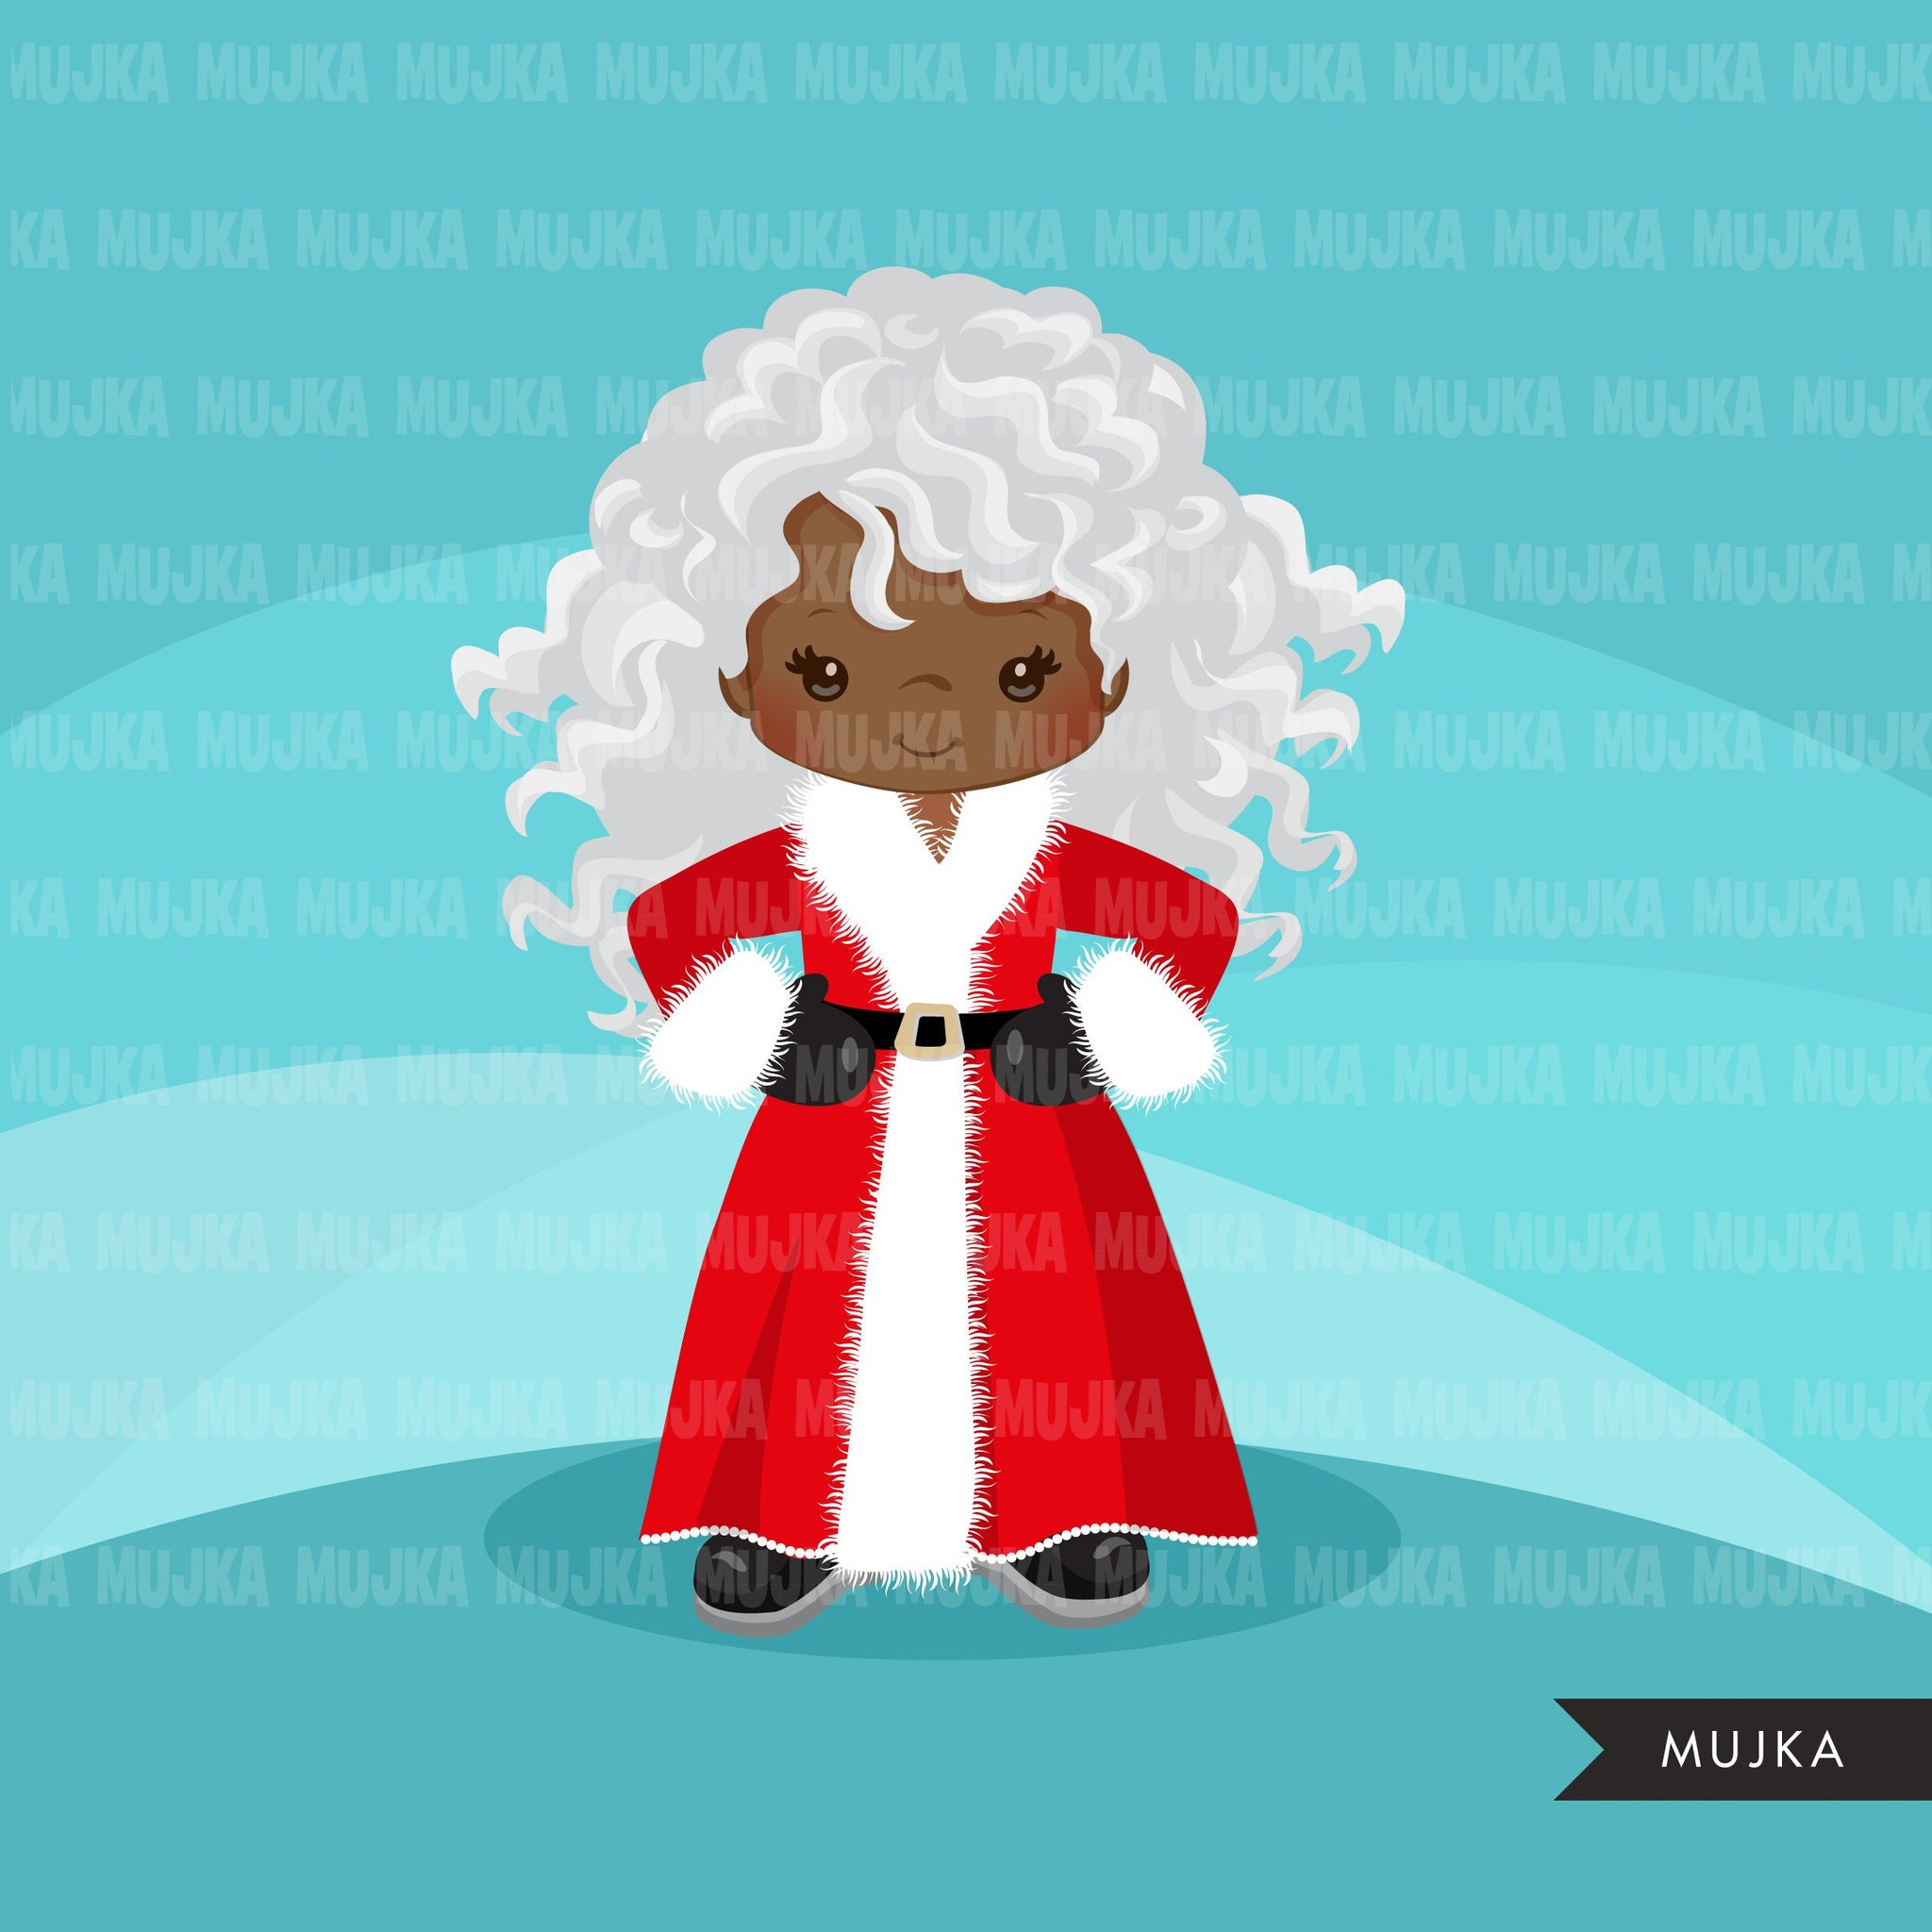 Black Mrs Santa Clipart, Christmas Graphics, Santa's wife, noel illustrations, scrapbooking, commercial use Holiday graphics